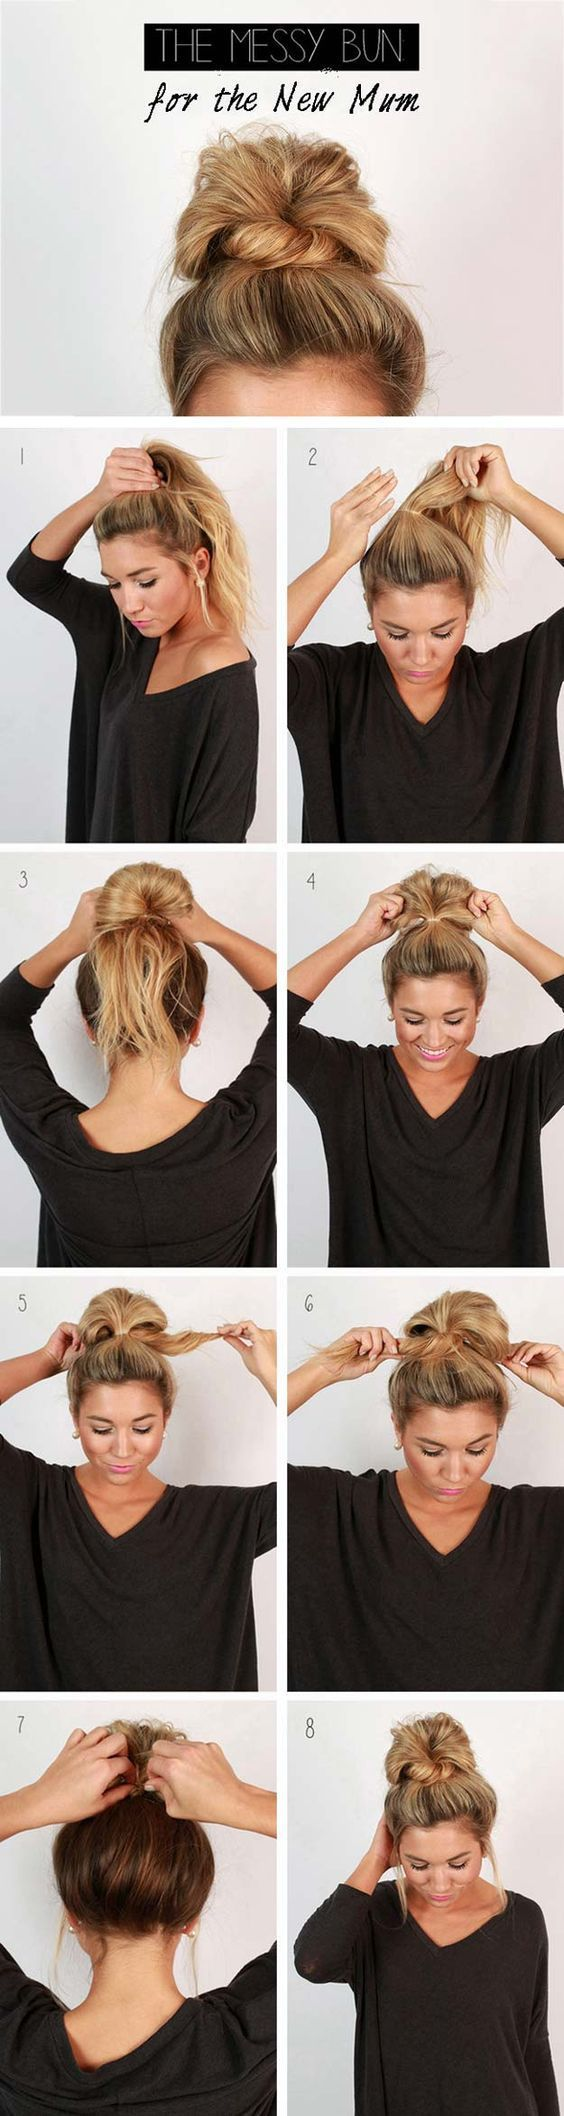 Cool and Easy DIY Hairstyles - Messy Bun - Quick and Easy Ideas for Back to School Styles for Medium, Short and Long Hair - Fun Tips and Best Step by Step Tutorials for Teens, Prom, Weddings, Special Occasions and Work. Up dos, Braids, Top Knots and Buns, Super Summer Looks http://diyprojectsforteens.com/diy-cool-easy-hairstyles: Chanel lipstick Giveaway